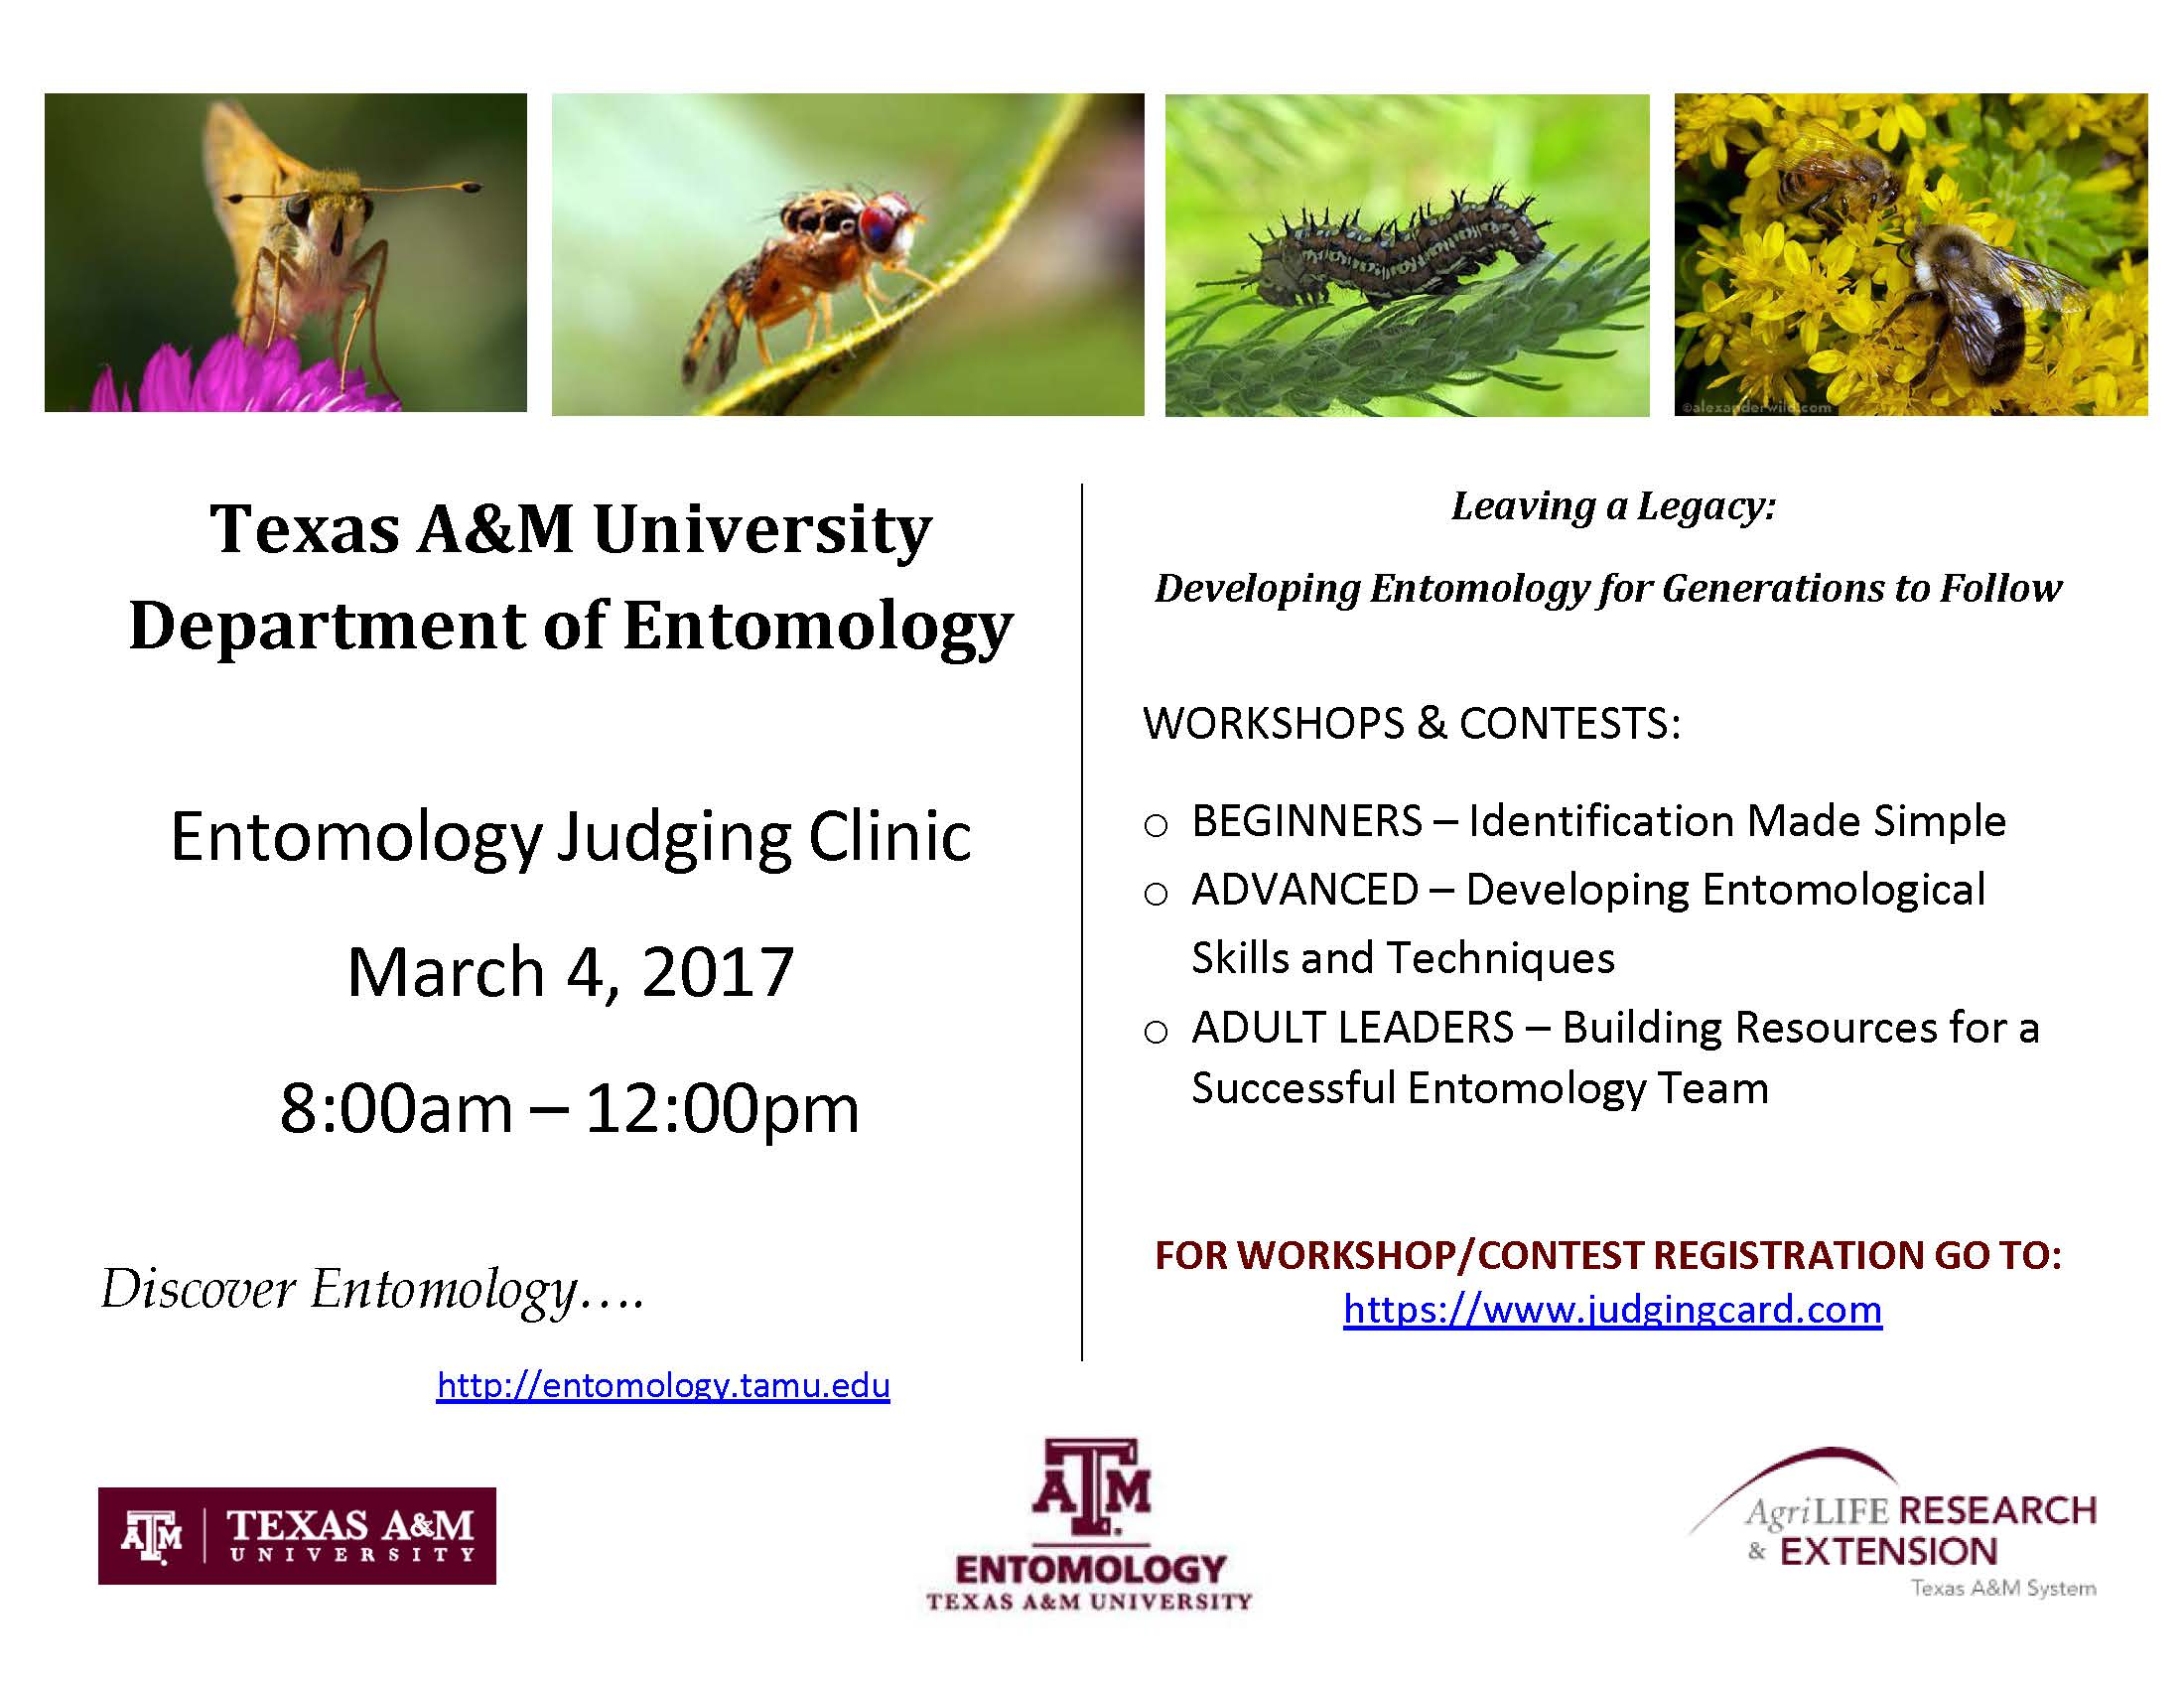 Texas A&M University Department of Entomology is offering a clinic on March 4 rom 8am-12pm - Come check it out!